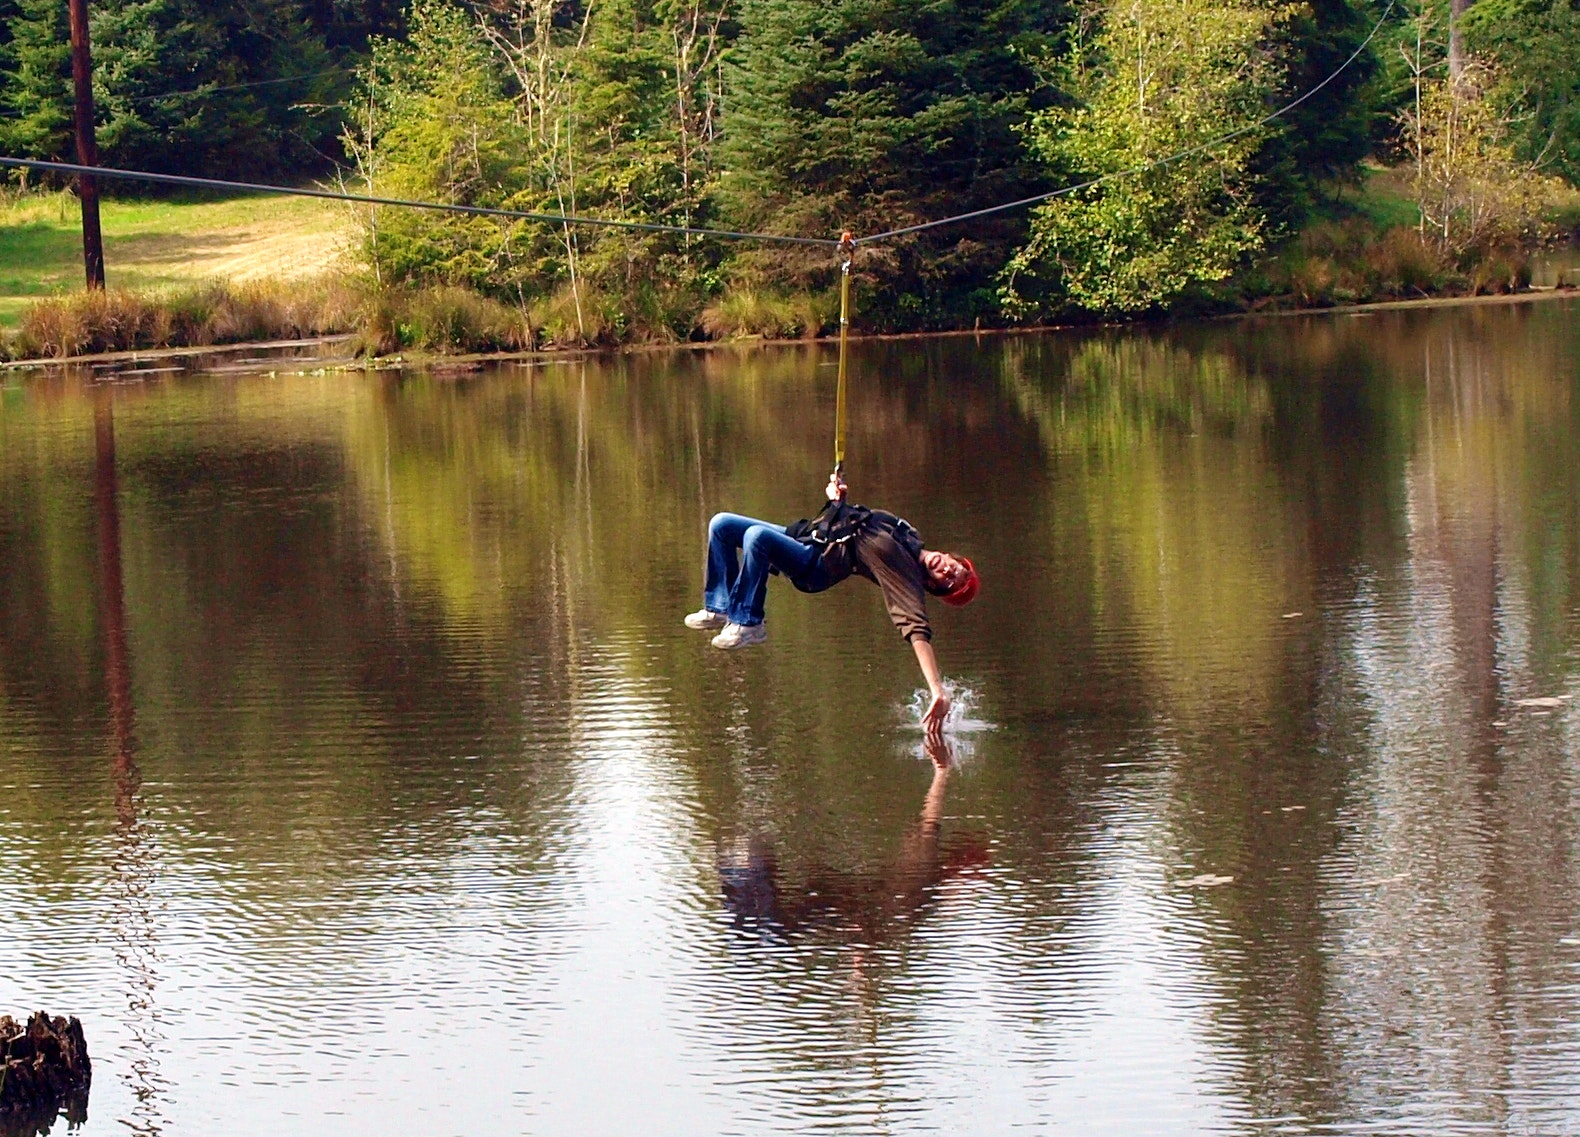 A zipliner touches the lake in Warrenton